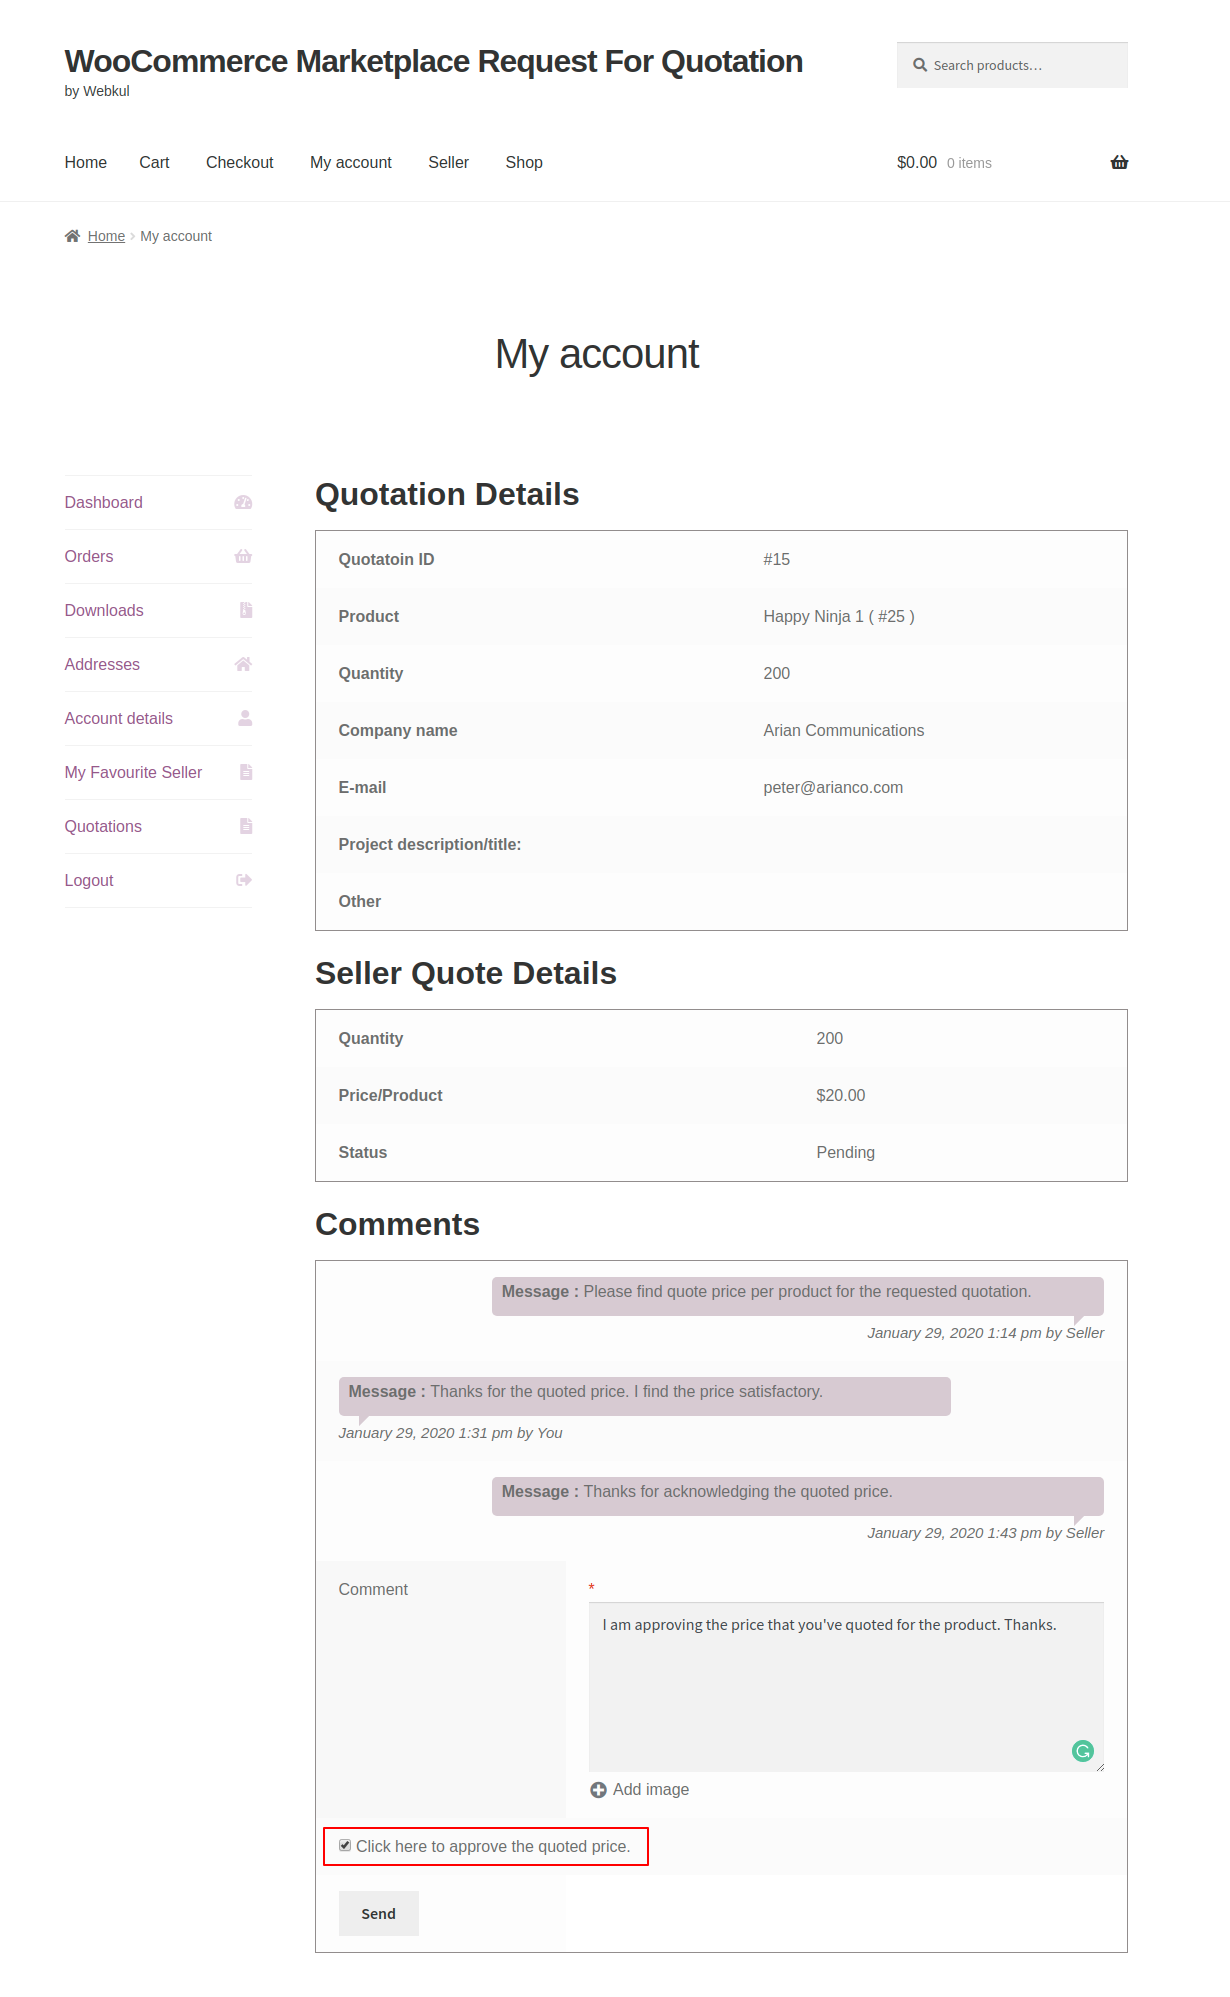 webkul-woocommerce-marketplace-request-for-quotation-customer-end-approving-quote-1